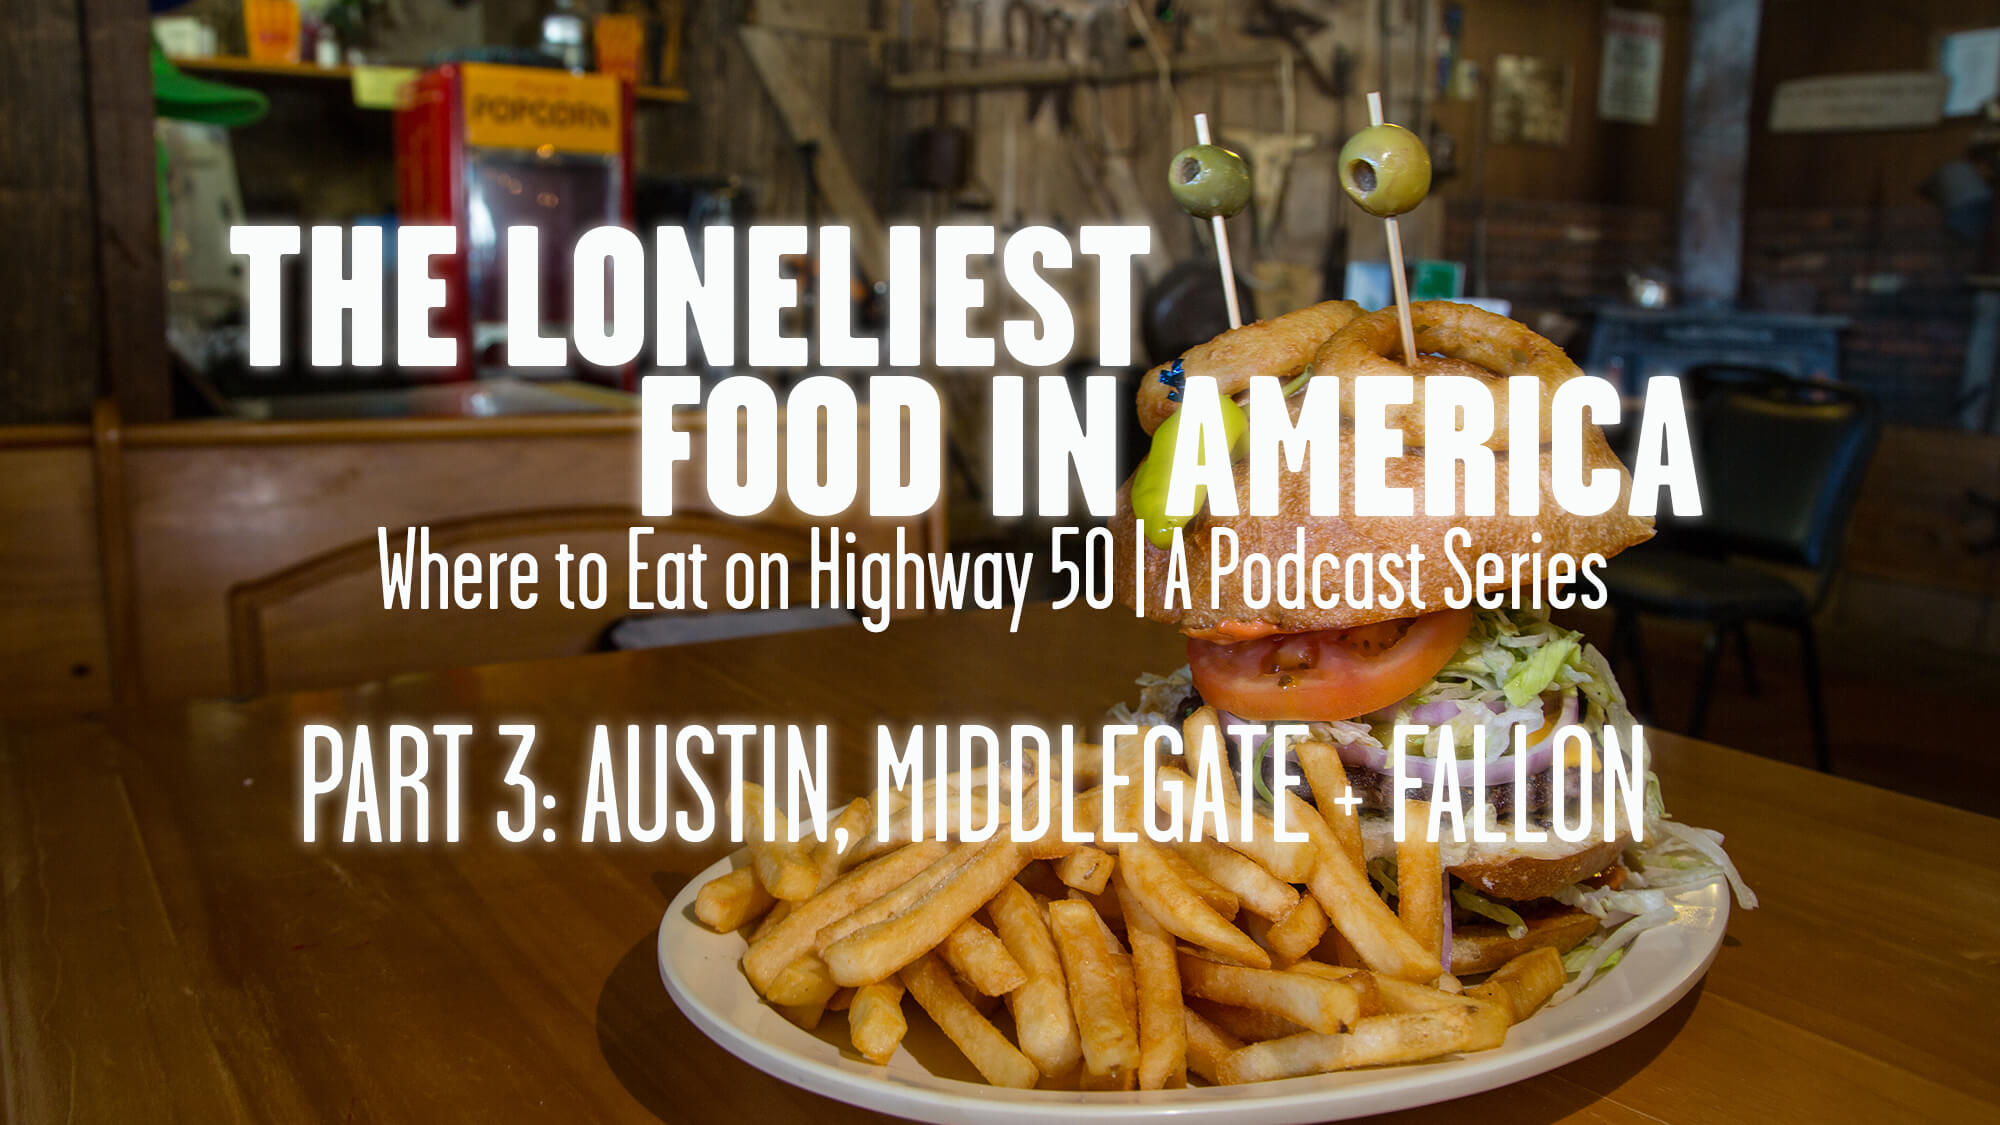 THE LONELIEST FOOD IN AMERICA - Part 3